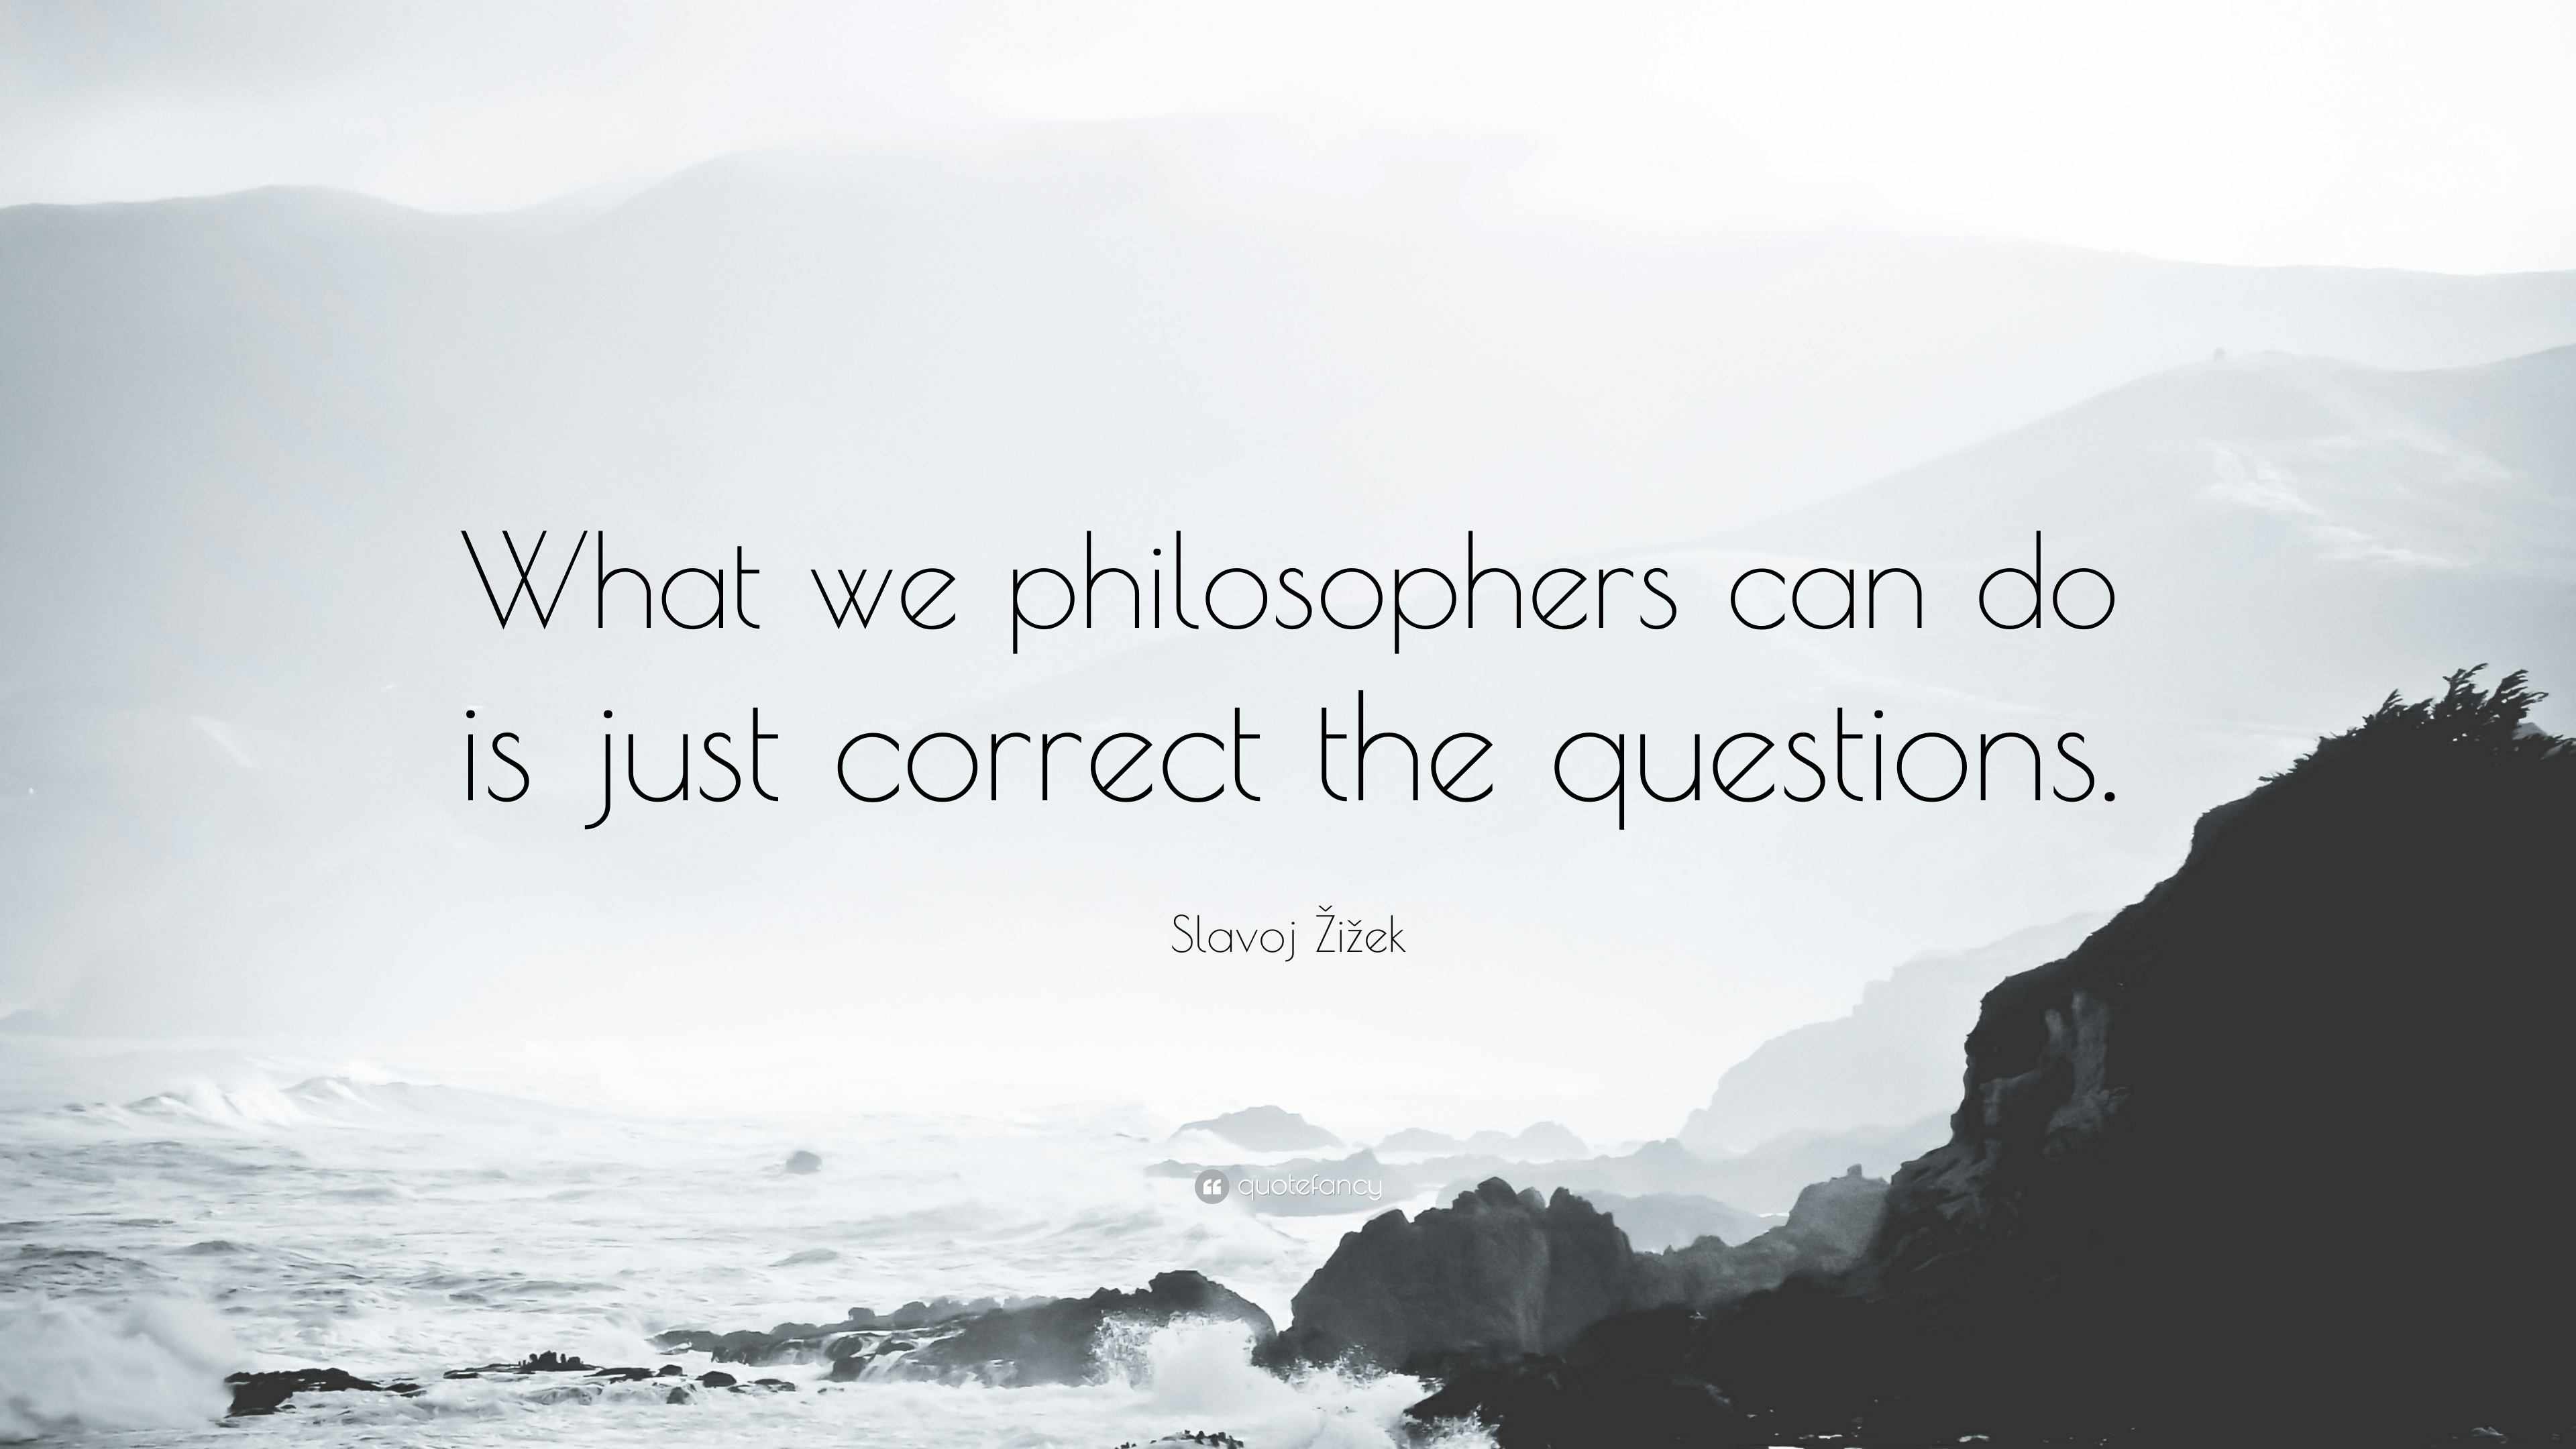 Slavoj Žižek 1187023-Slavoj-i-ek-Quote-What-we-philosophers-can-do-is-just-correct-the